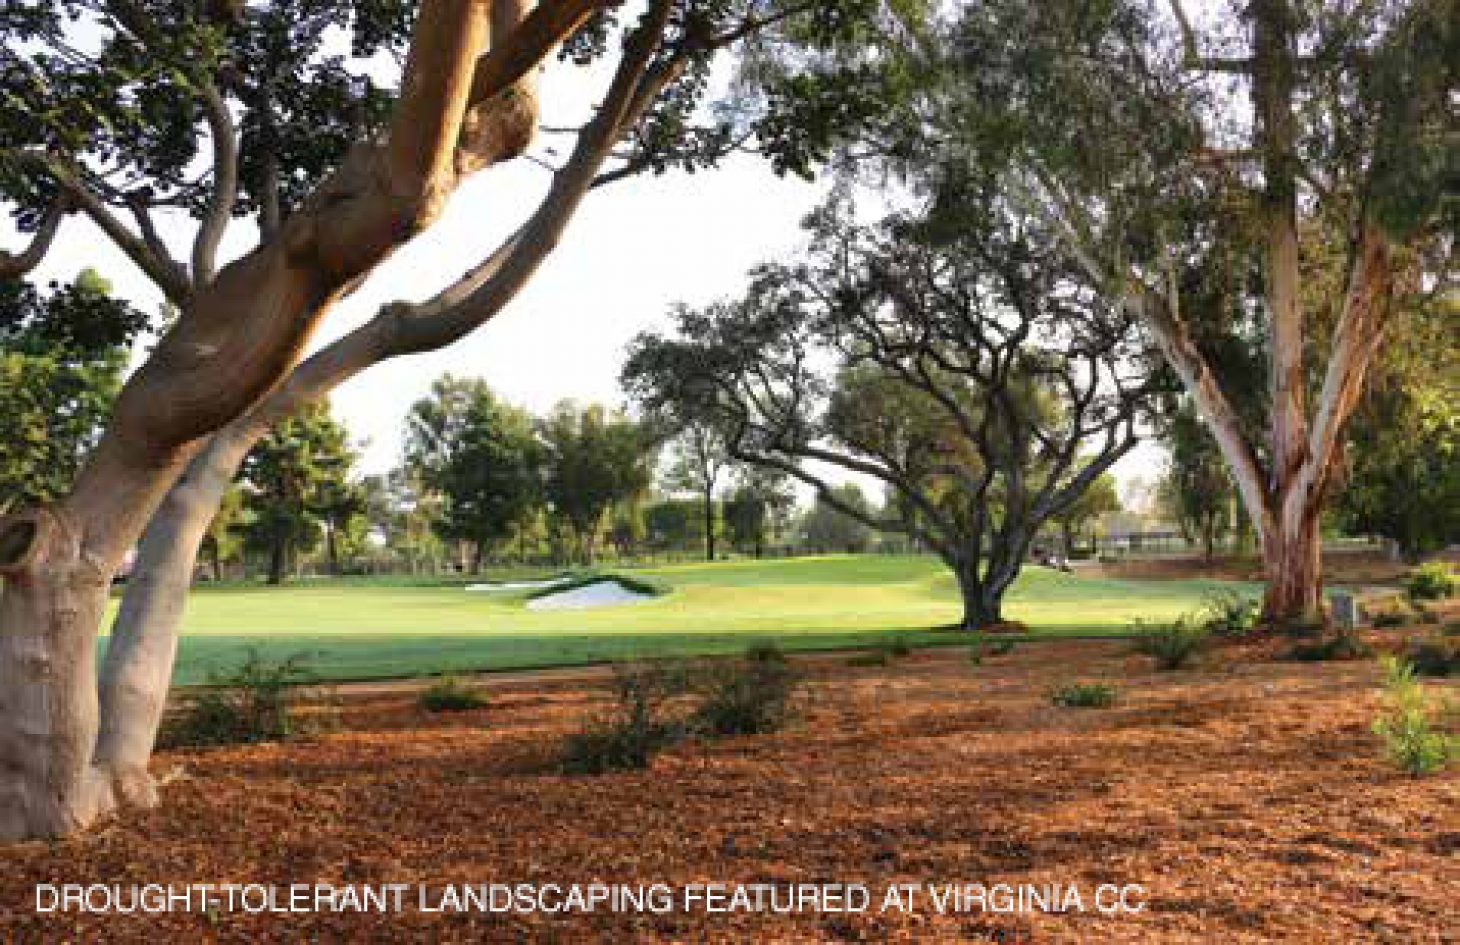 drought-tolerant landscaping featured at virginia cc